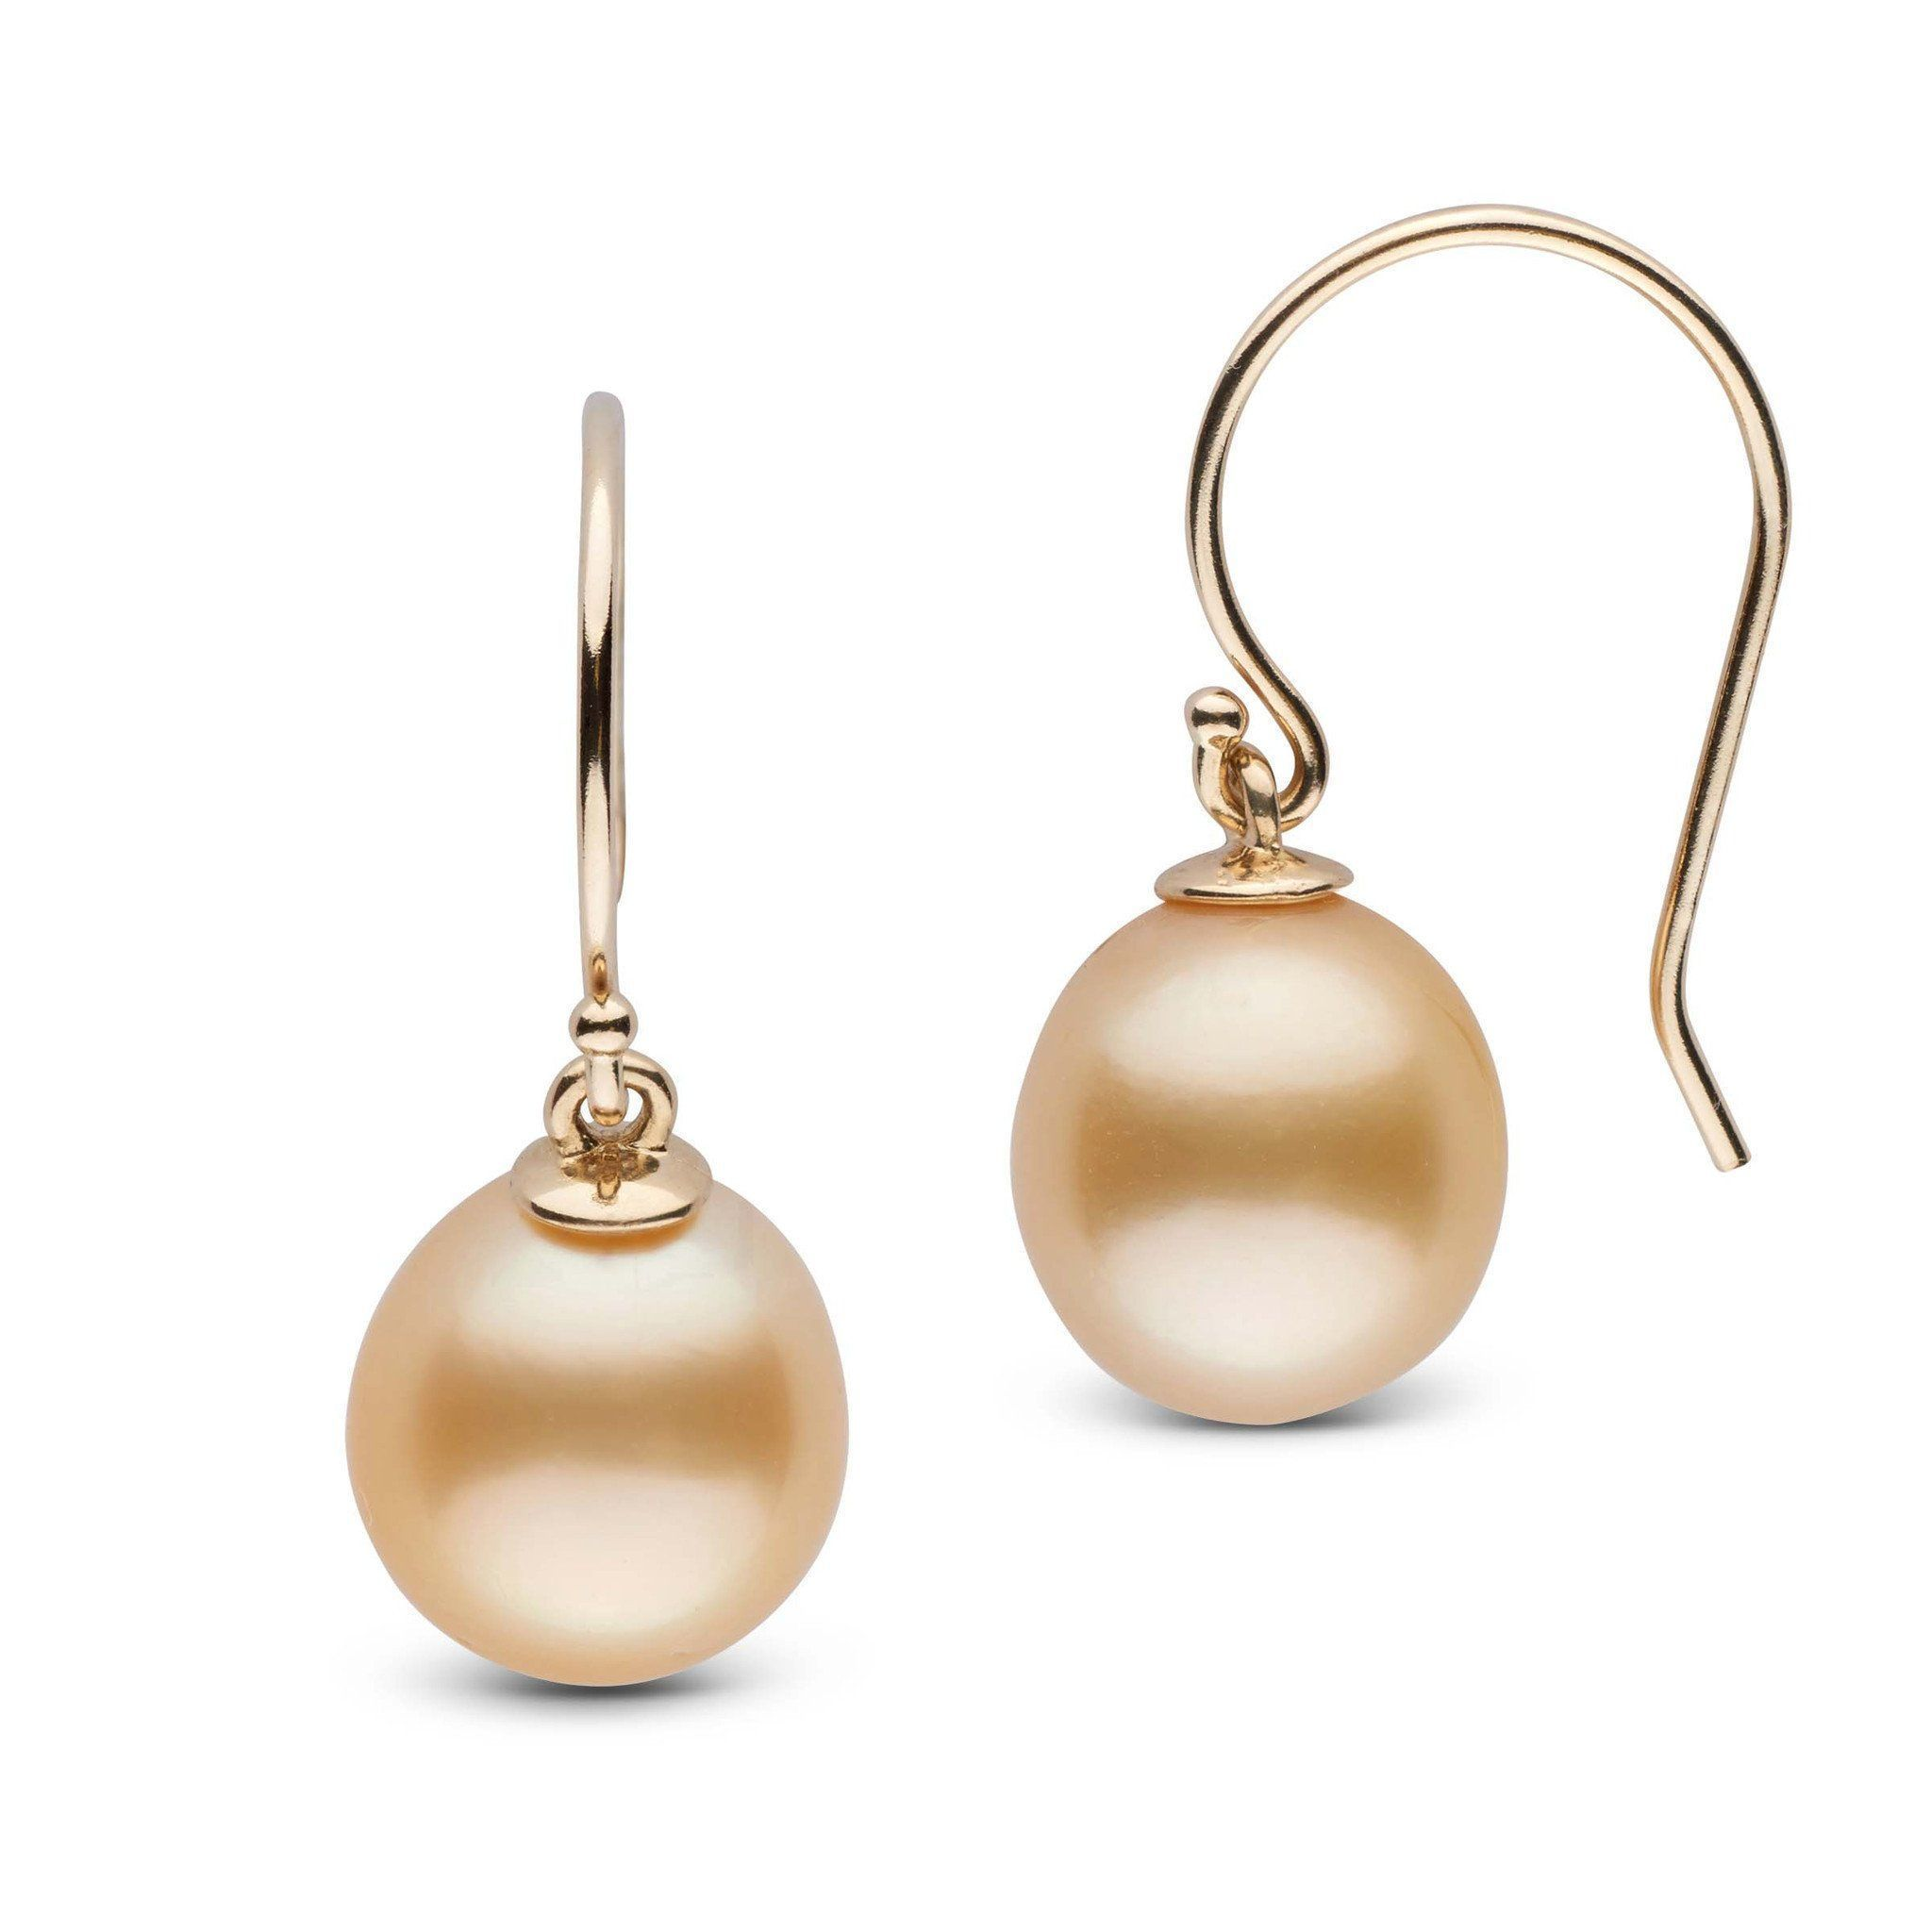 Shepherd Collection Drop Golden South Sea 9.0-10.0 mm Pearl Earrings